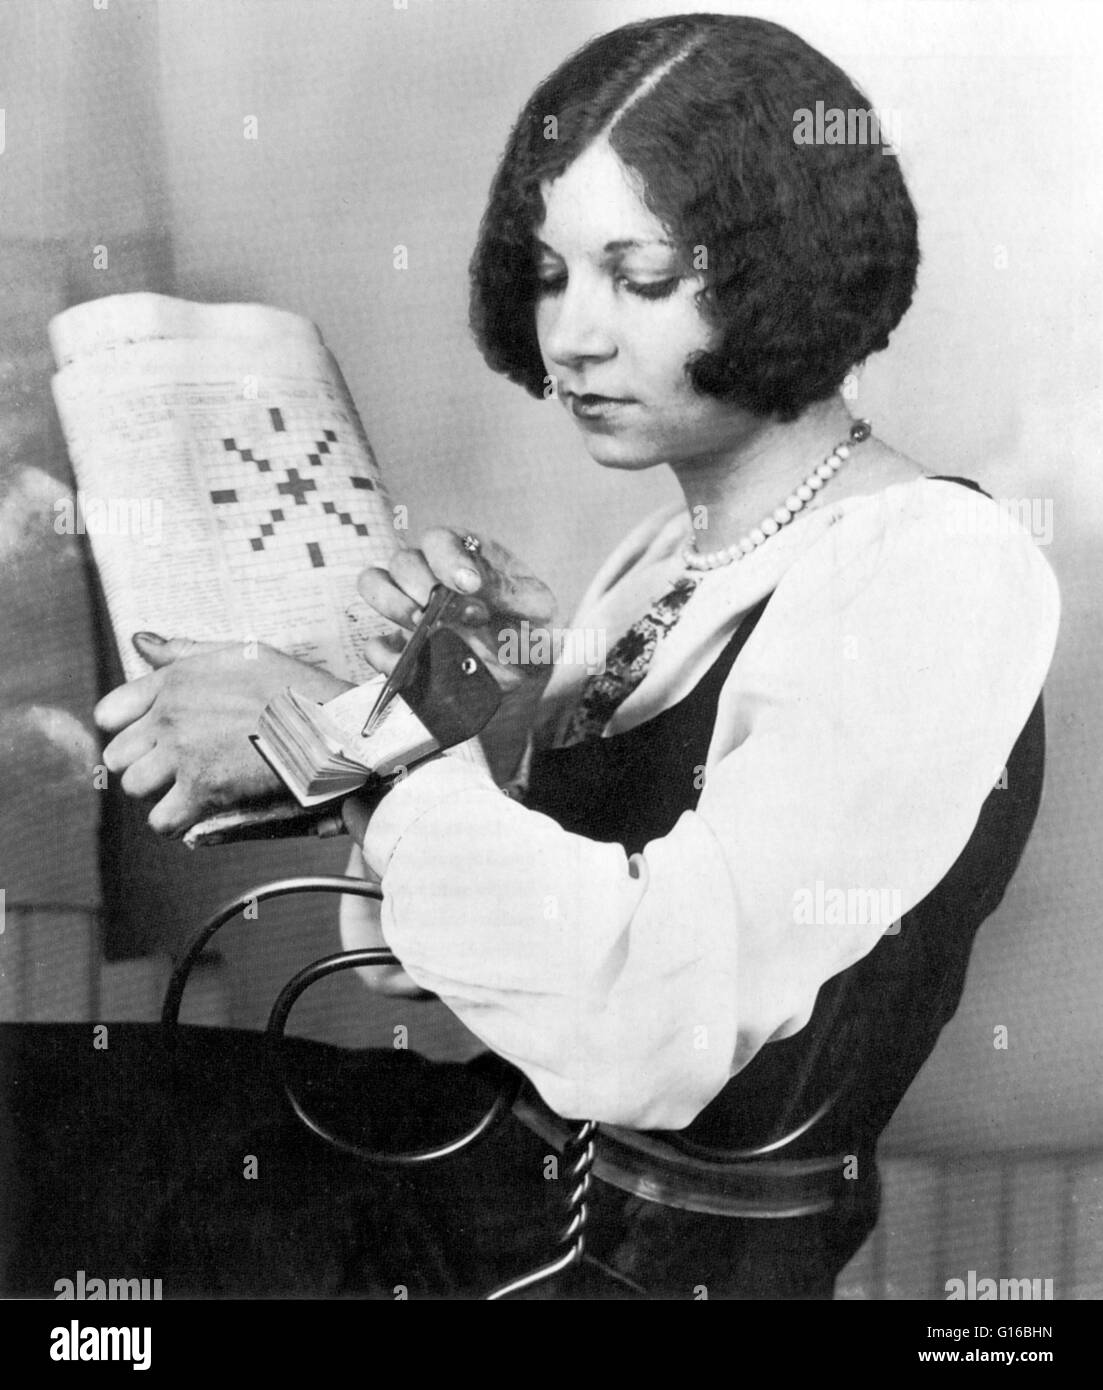 The 1920s brought a crossword puzzle fad to the United States. This young woman looks up 'Egyptian Sun God' - Stock Image